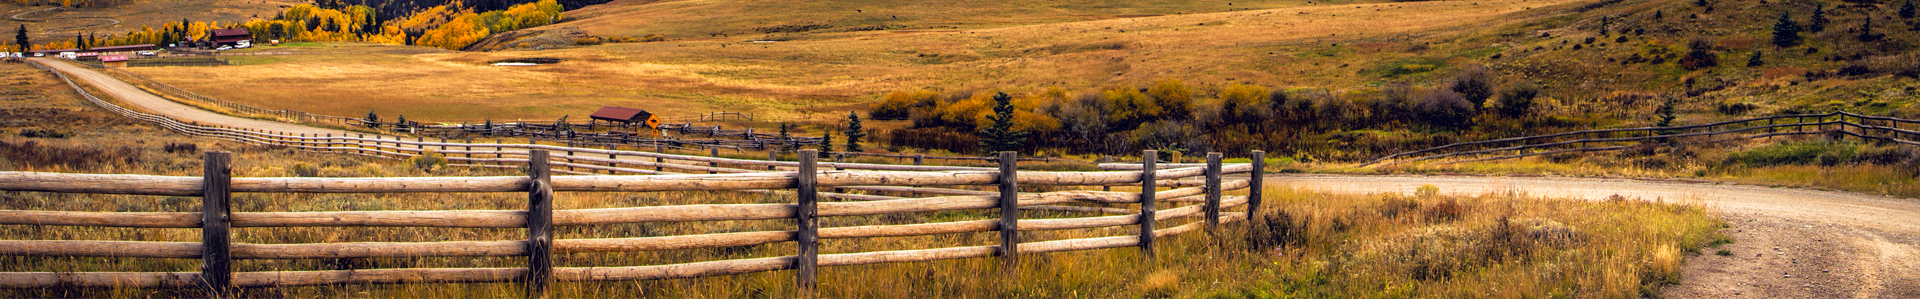 Country dirt road with ranch fencing